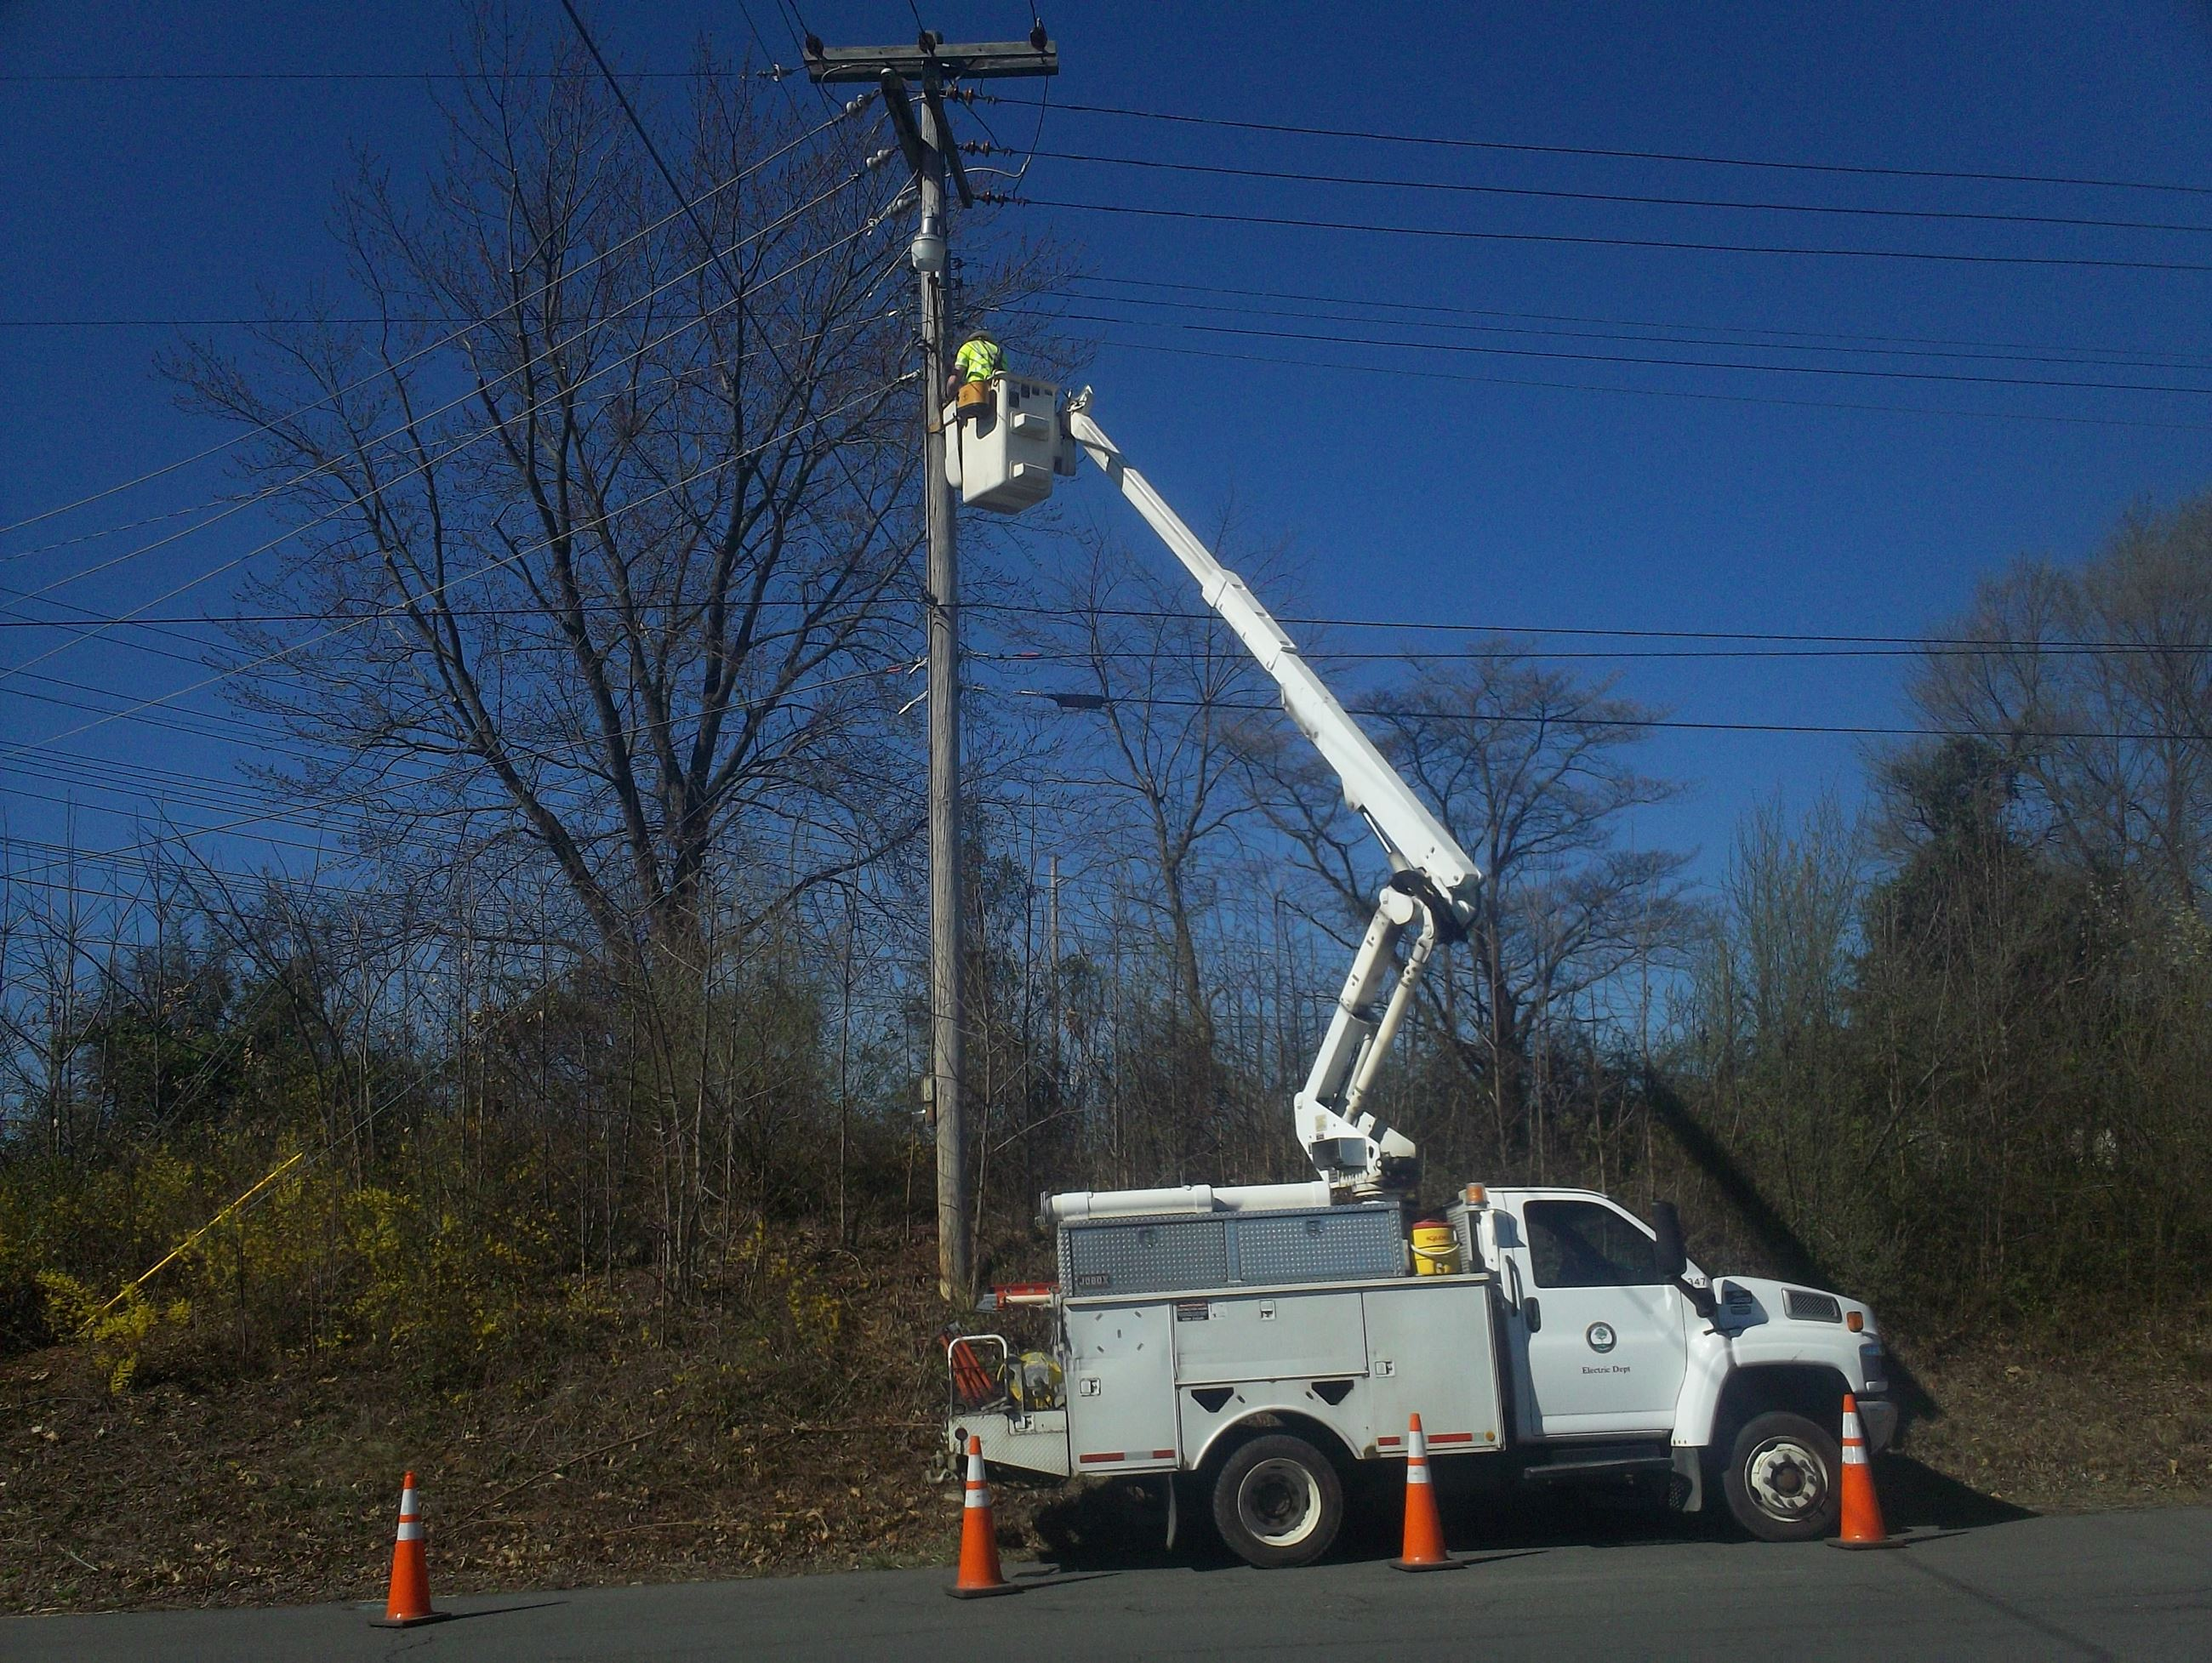 Street light replacement